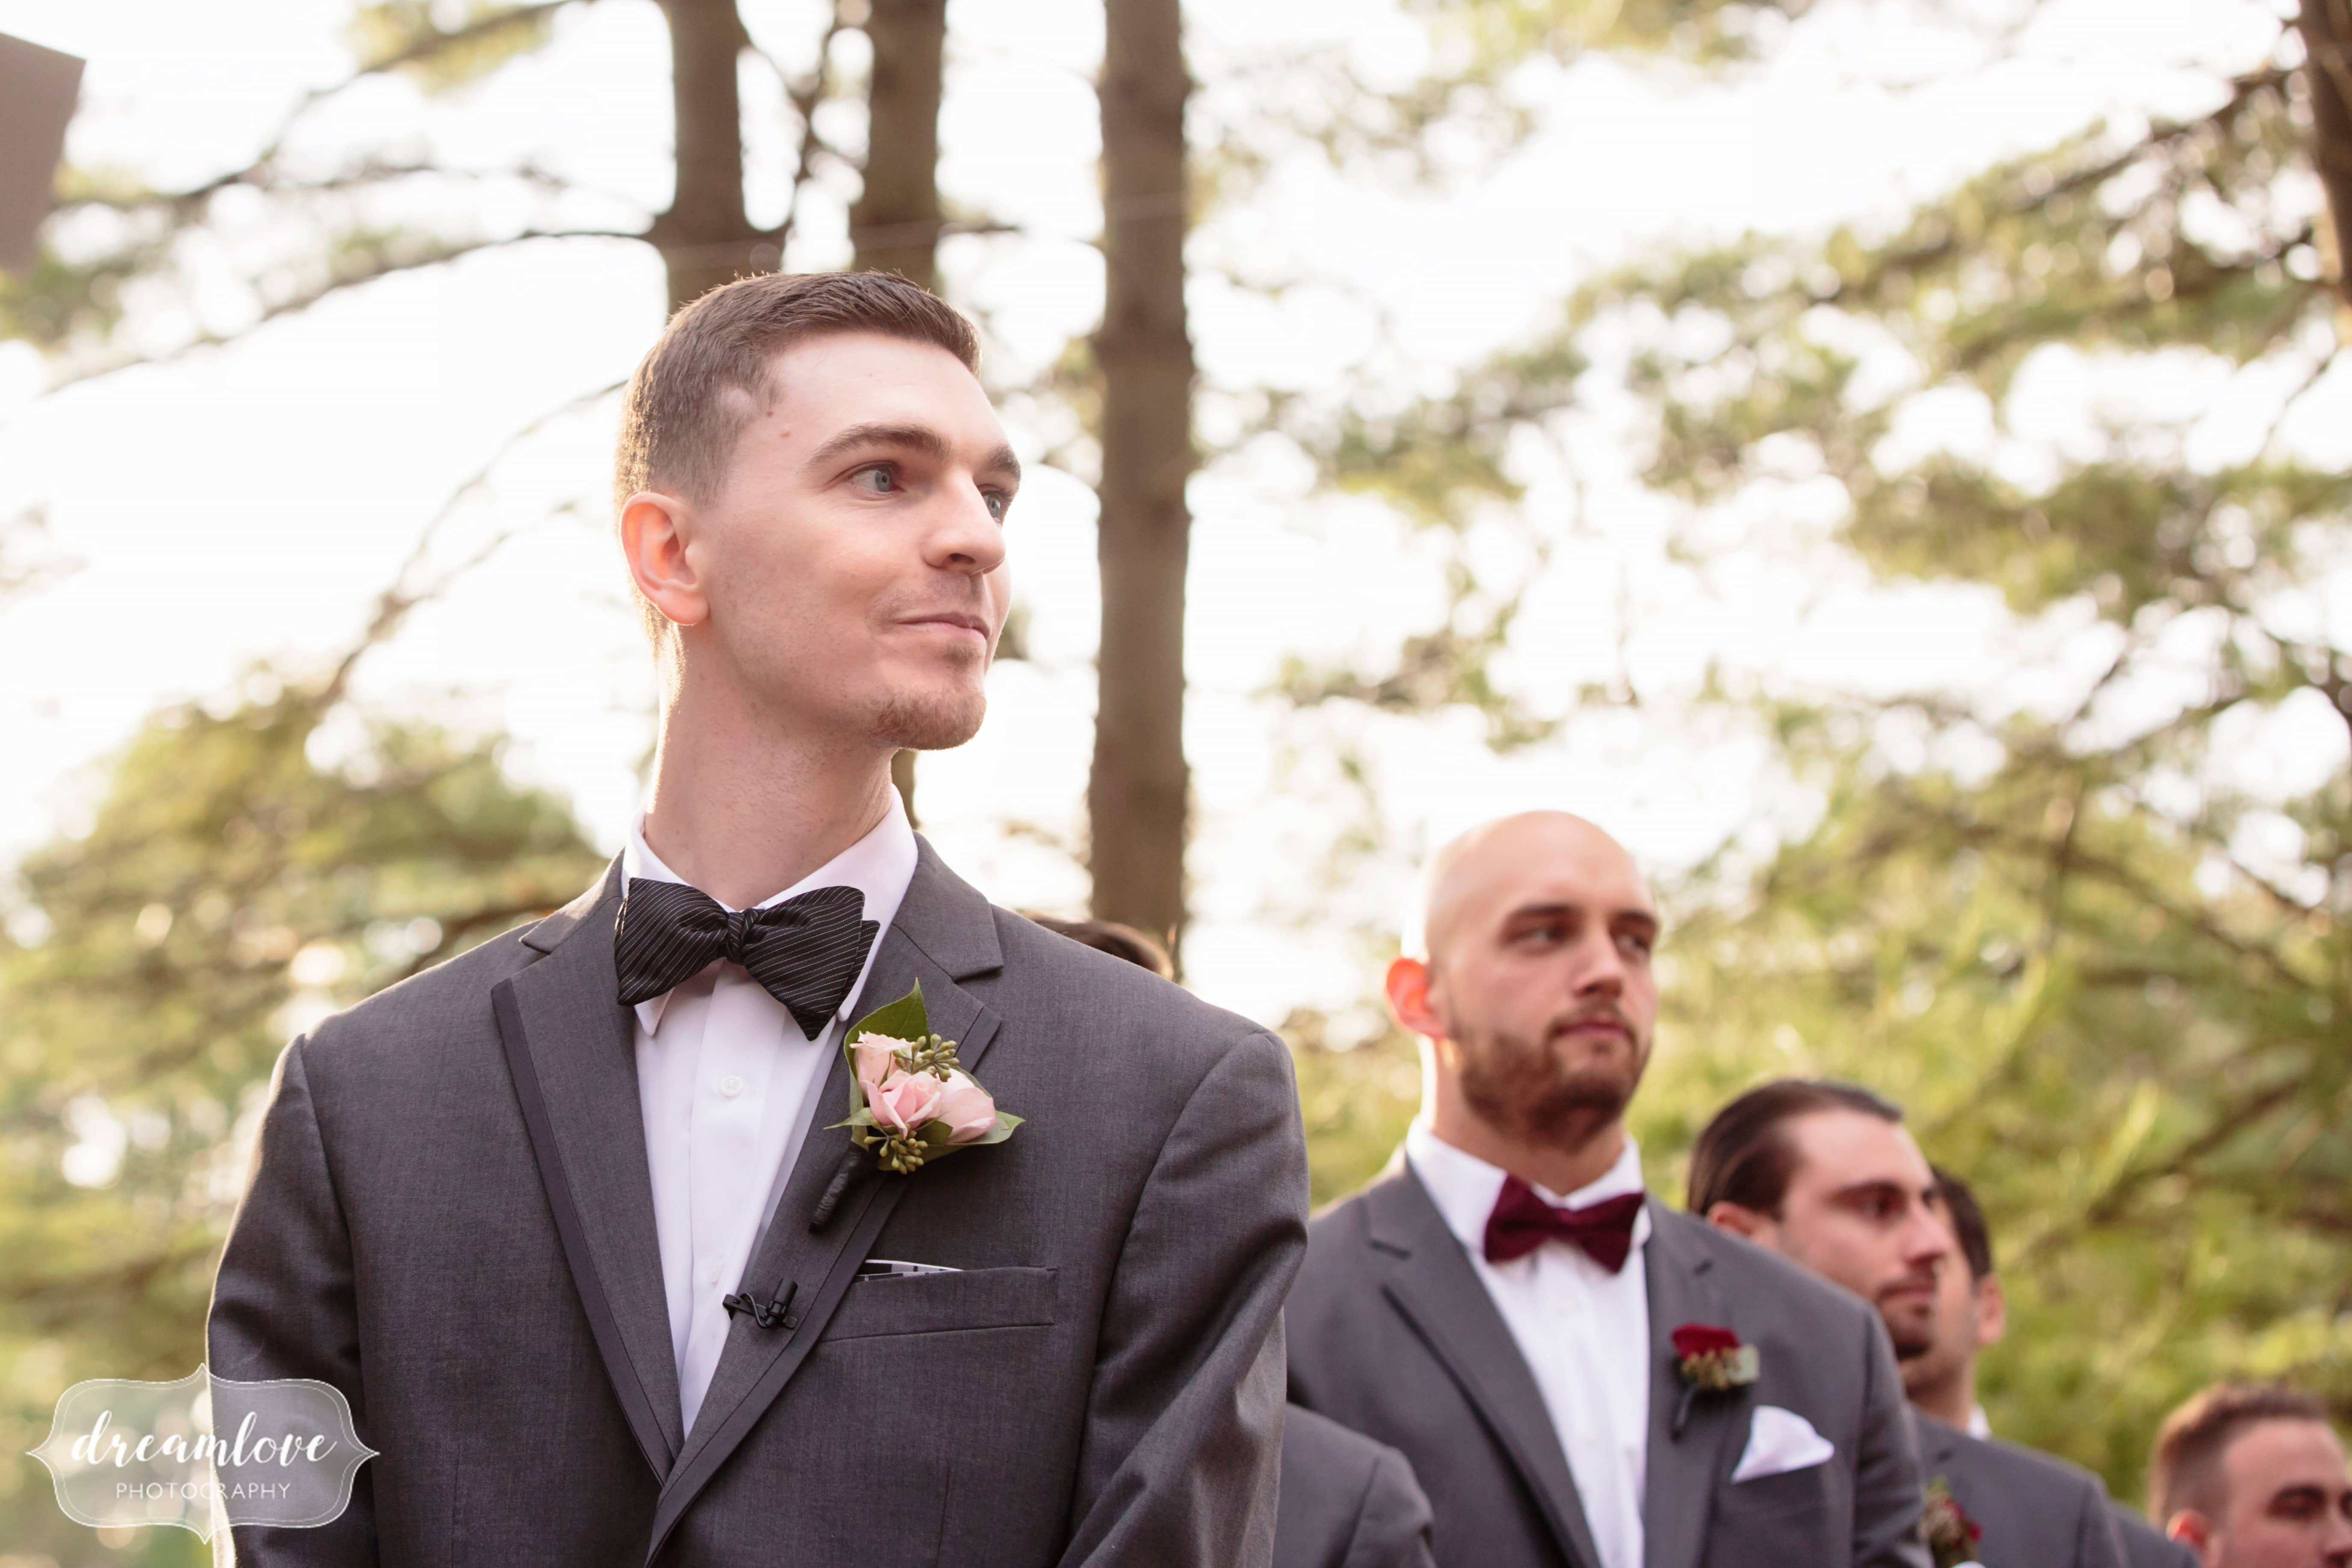 Groom watches as the bride enters ceremony at the Pavilion on Crystal Lake venue in CT.